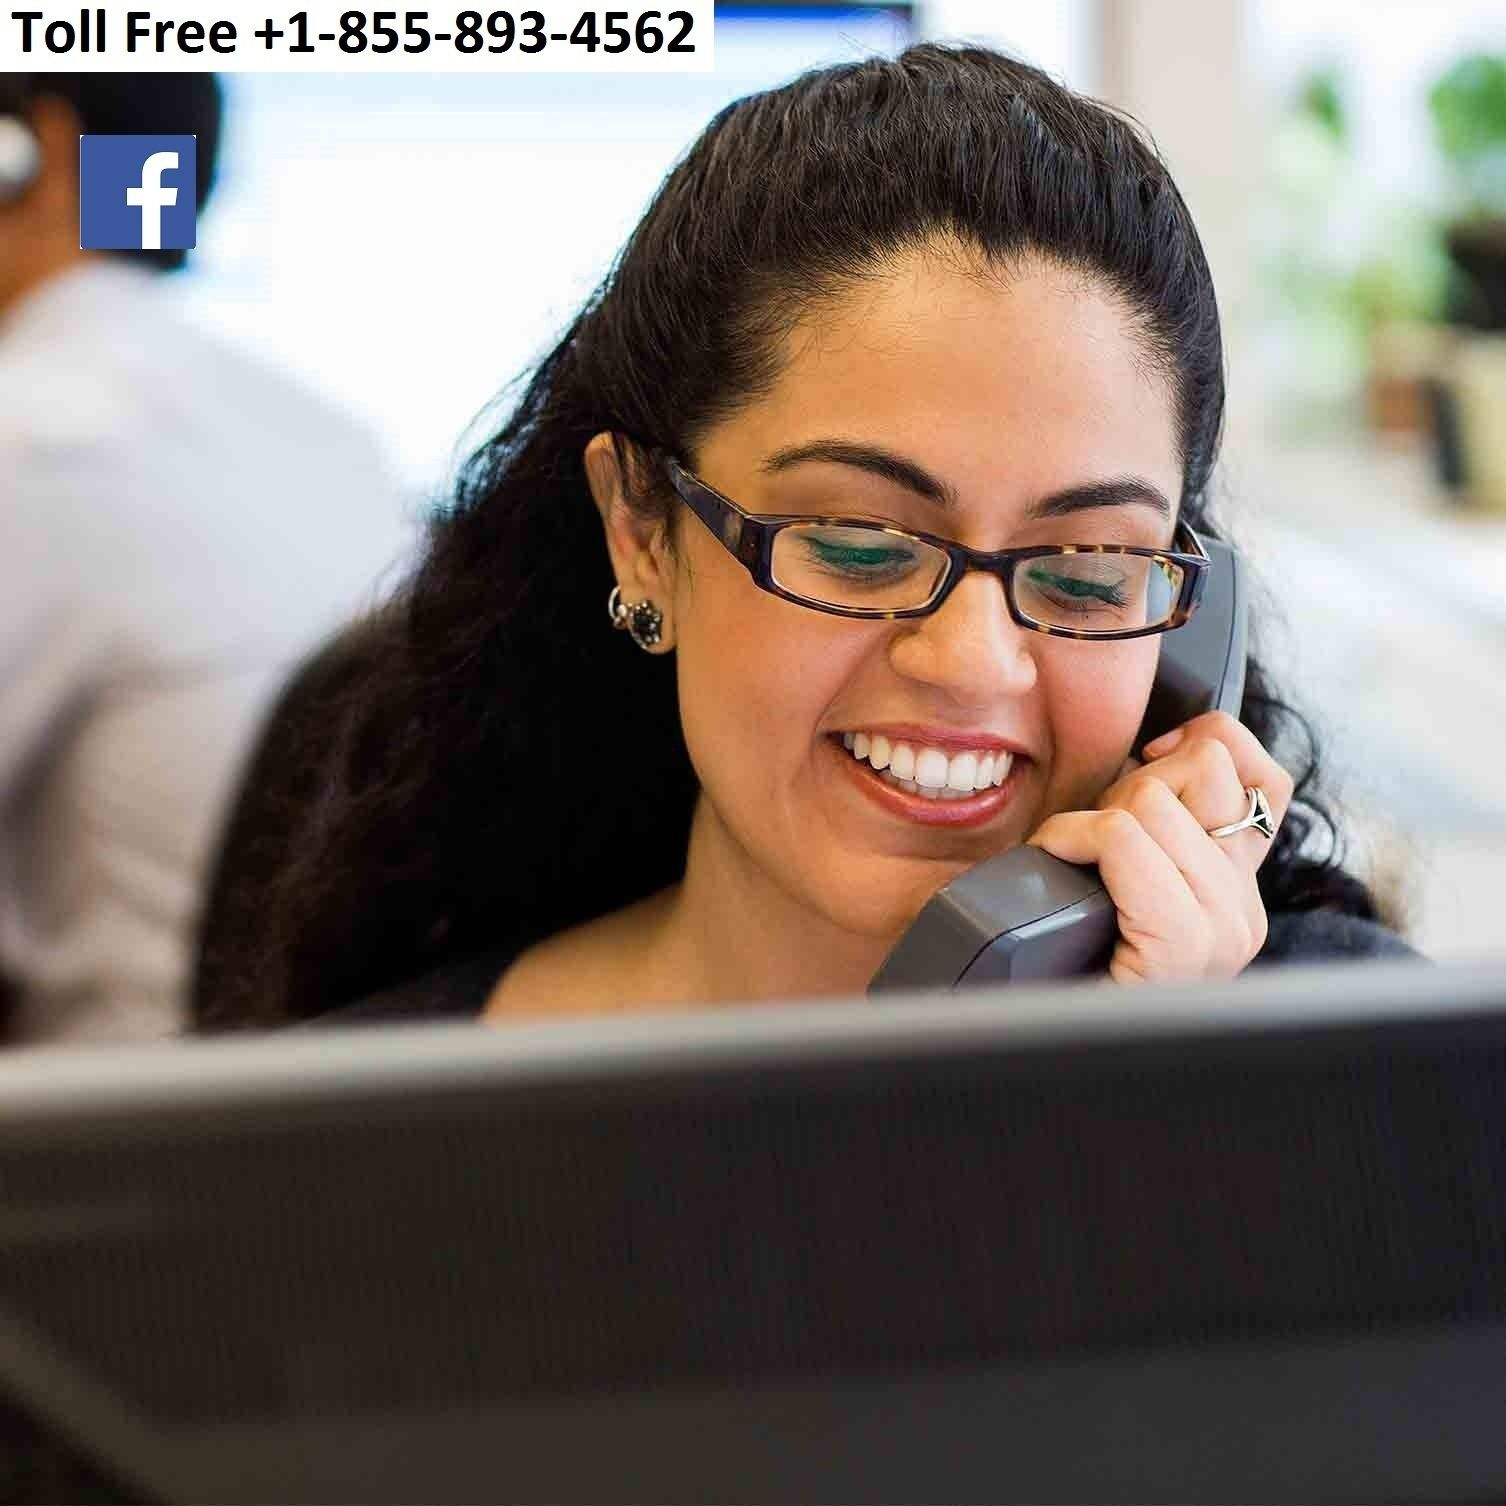 Official Facebook Customer Service Phone Number +1855893